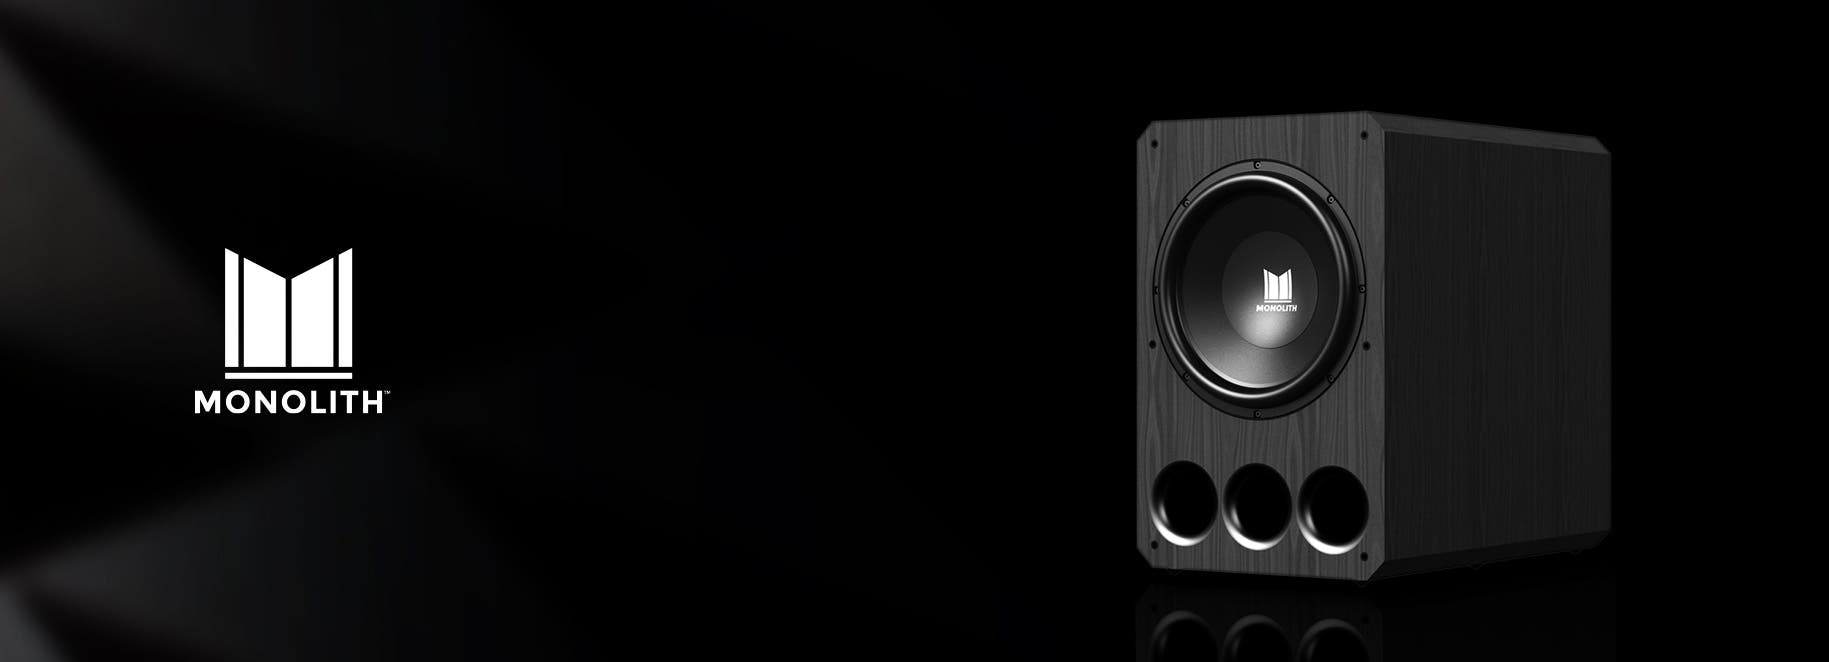 Monolith THX Select Subwoofer